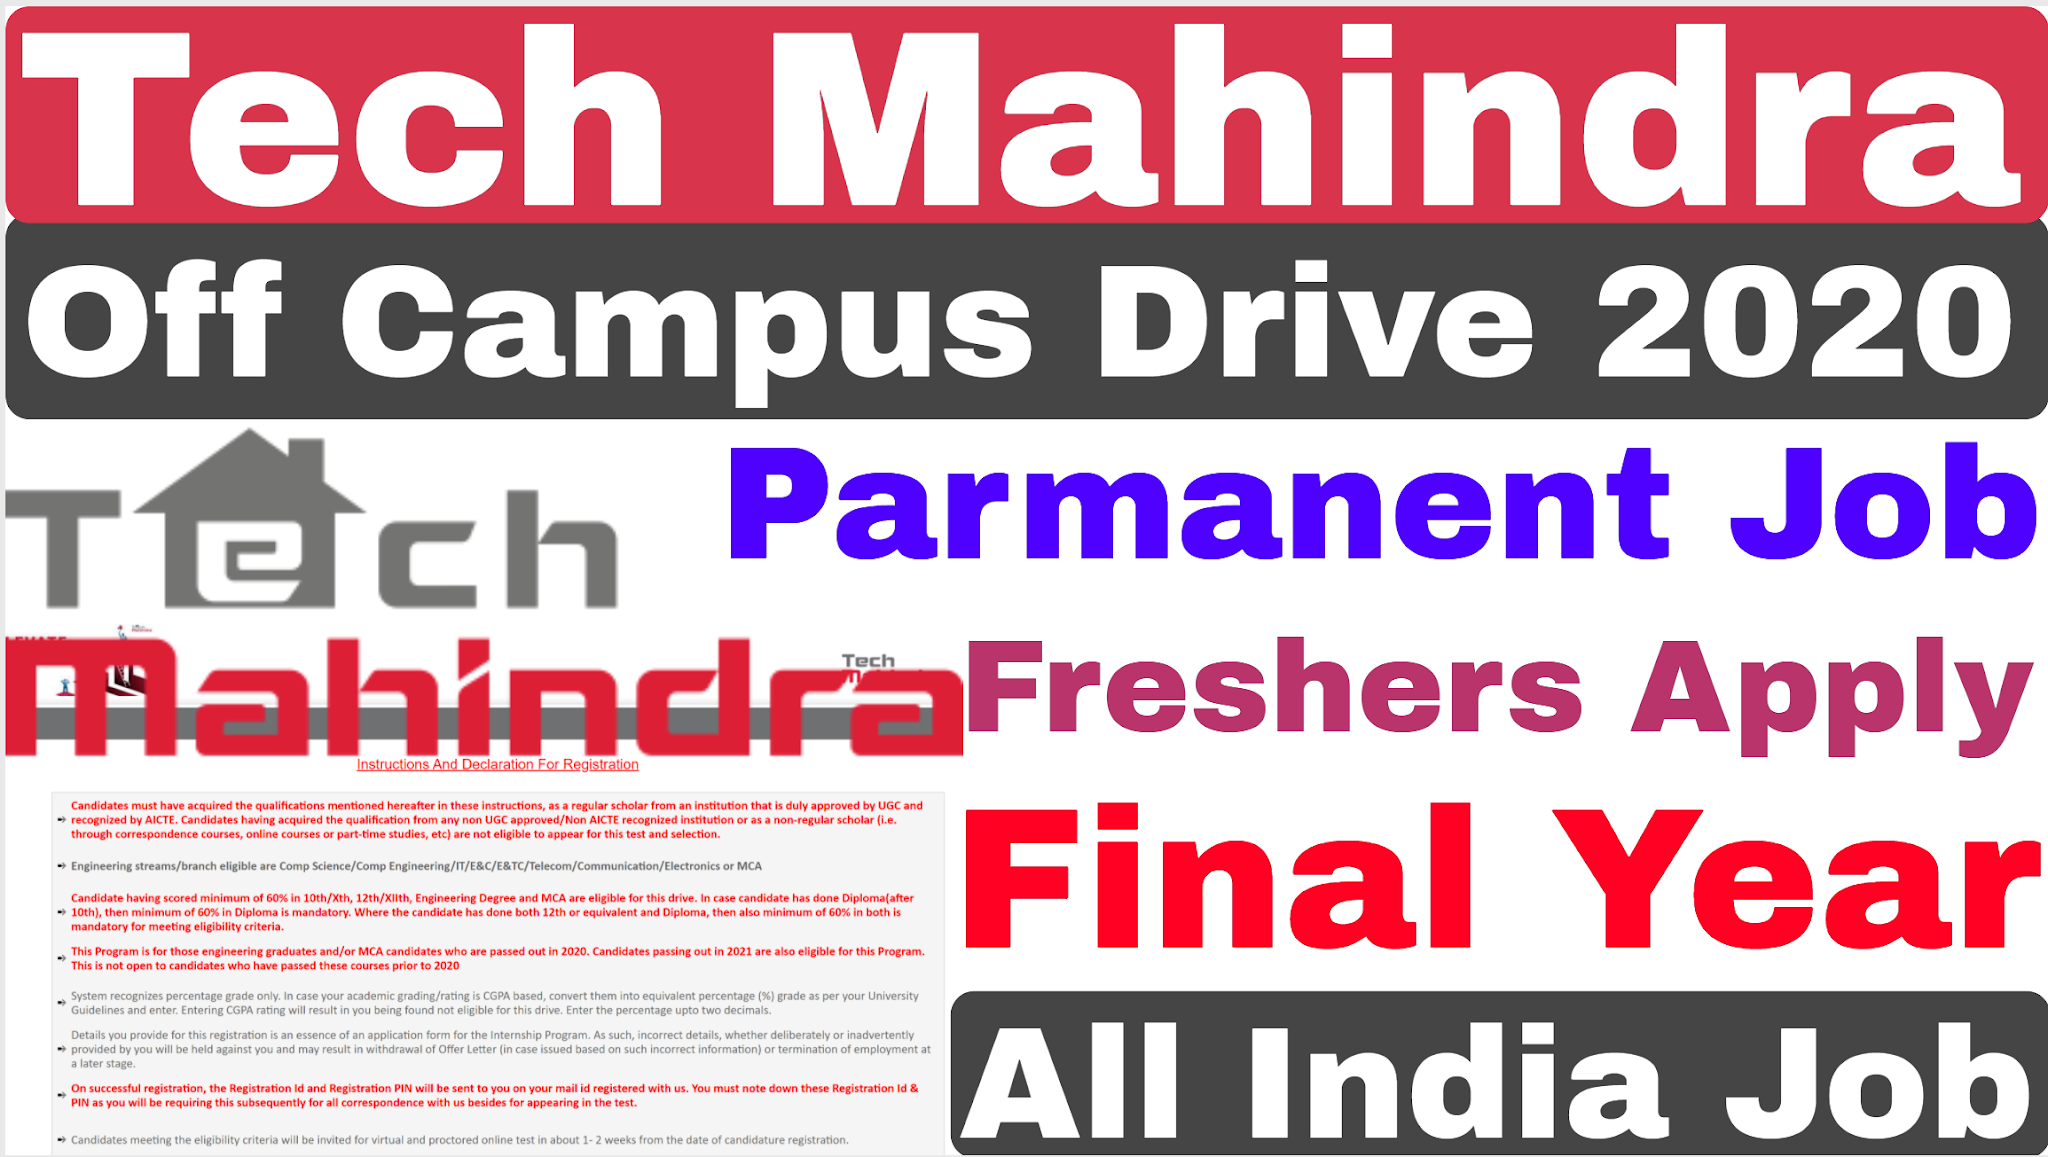 Tech Mahindra Off Campus Recruitment 2020 Final Year Eligible Tech Mahindra Form Fill Up 2020 Technical Department